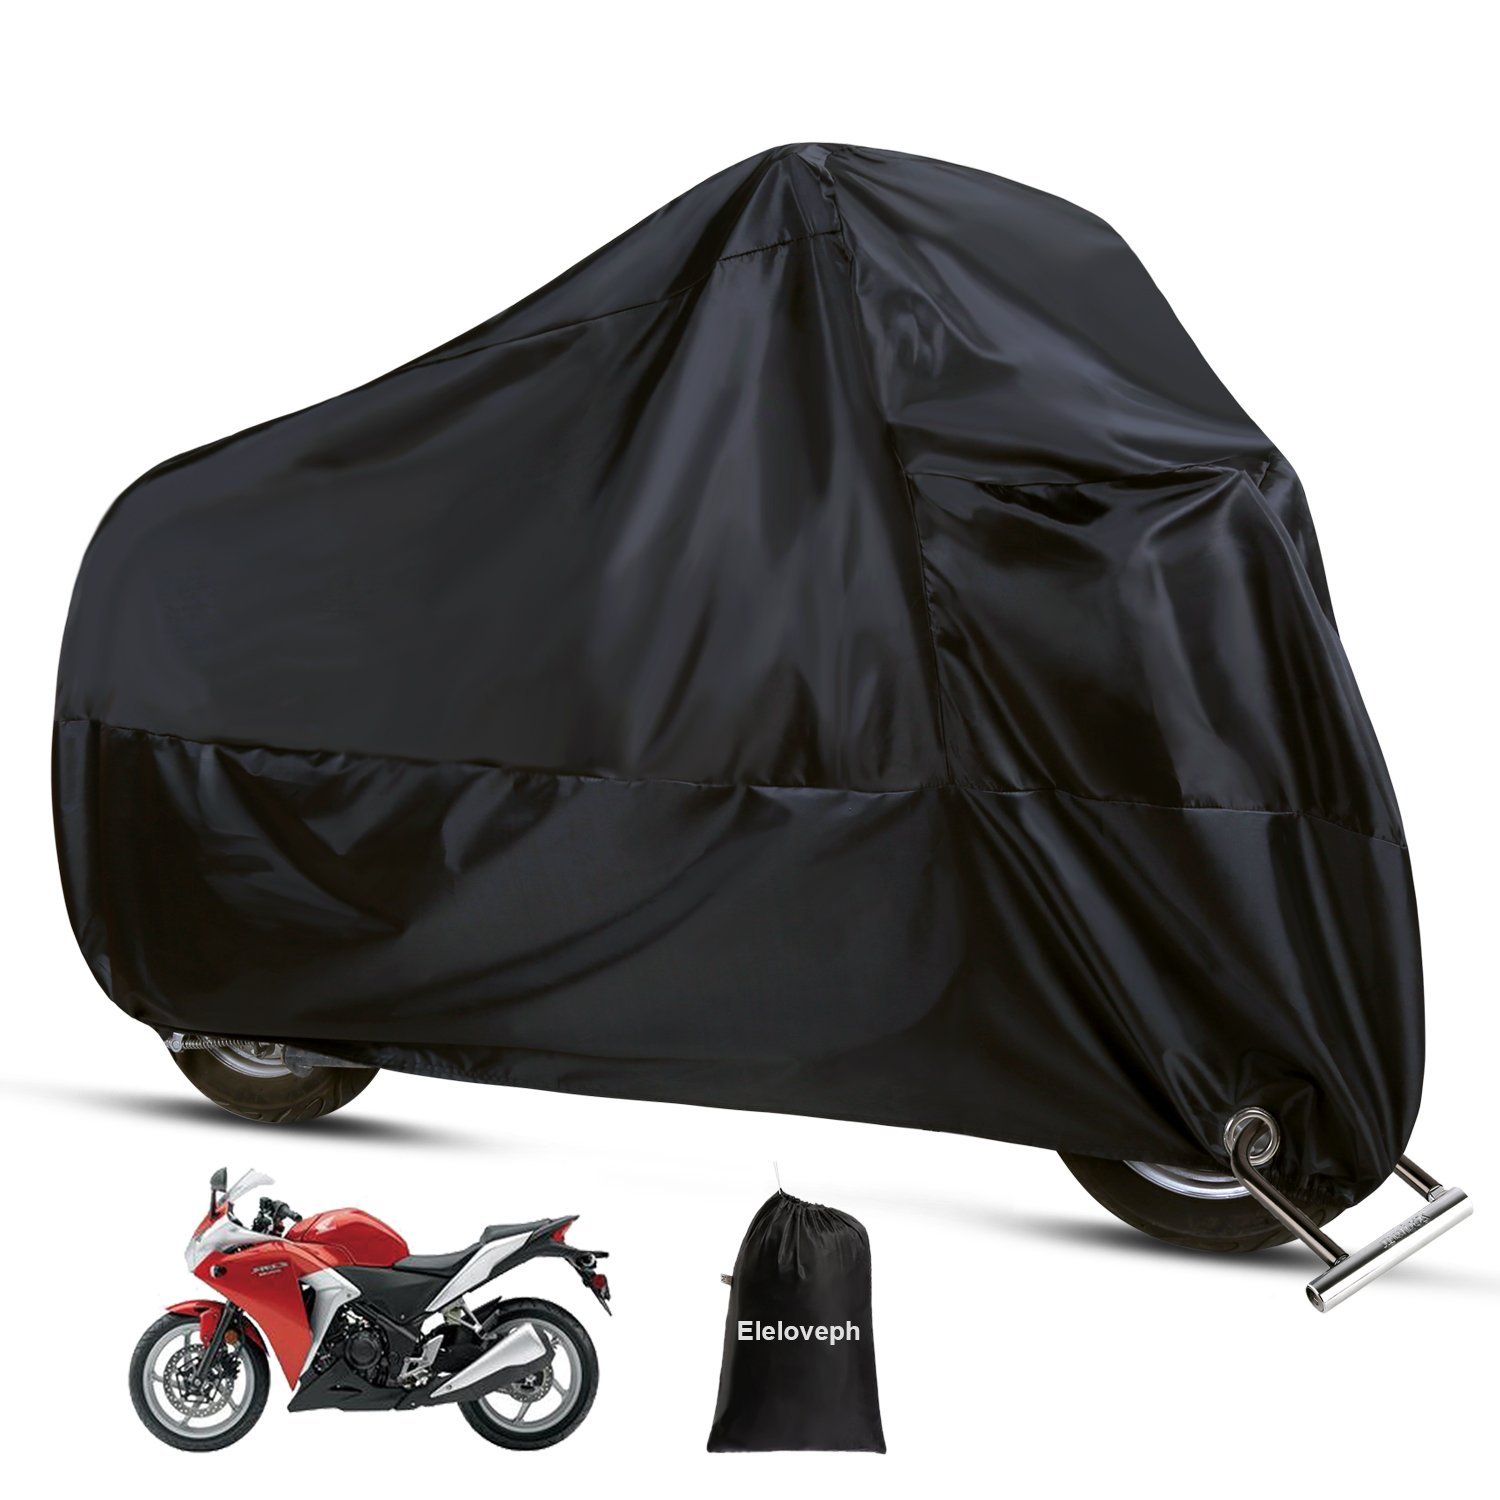 Motorcycle Cover - All Season Waterproof Outdoor Protection - Precision Fit for Tour Bikes, Choppers and Cruisers - Eleloveph Protect Against Dust,Rain,Snow and Sun (XXL-96''x41''x49'', Black)